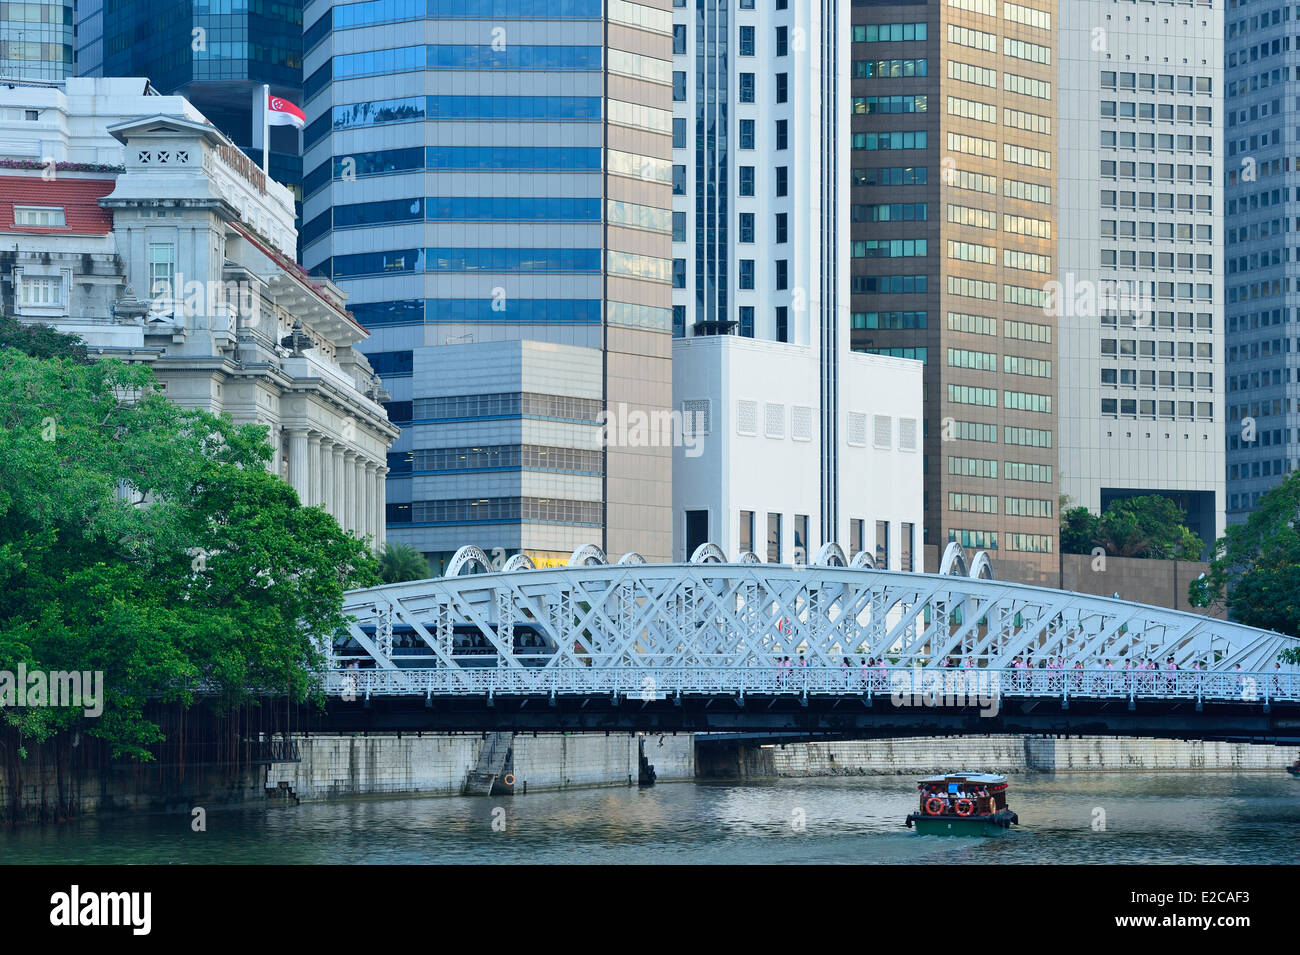 Singapore, the Anderson Bridge built in 1910 over the Singapore river replaces the Cavenagh Bridge now pedestrian - Stock Image